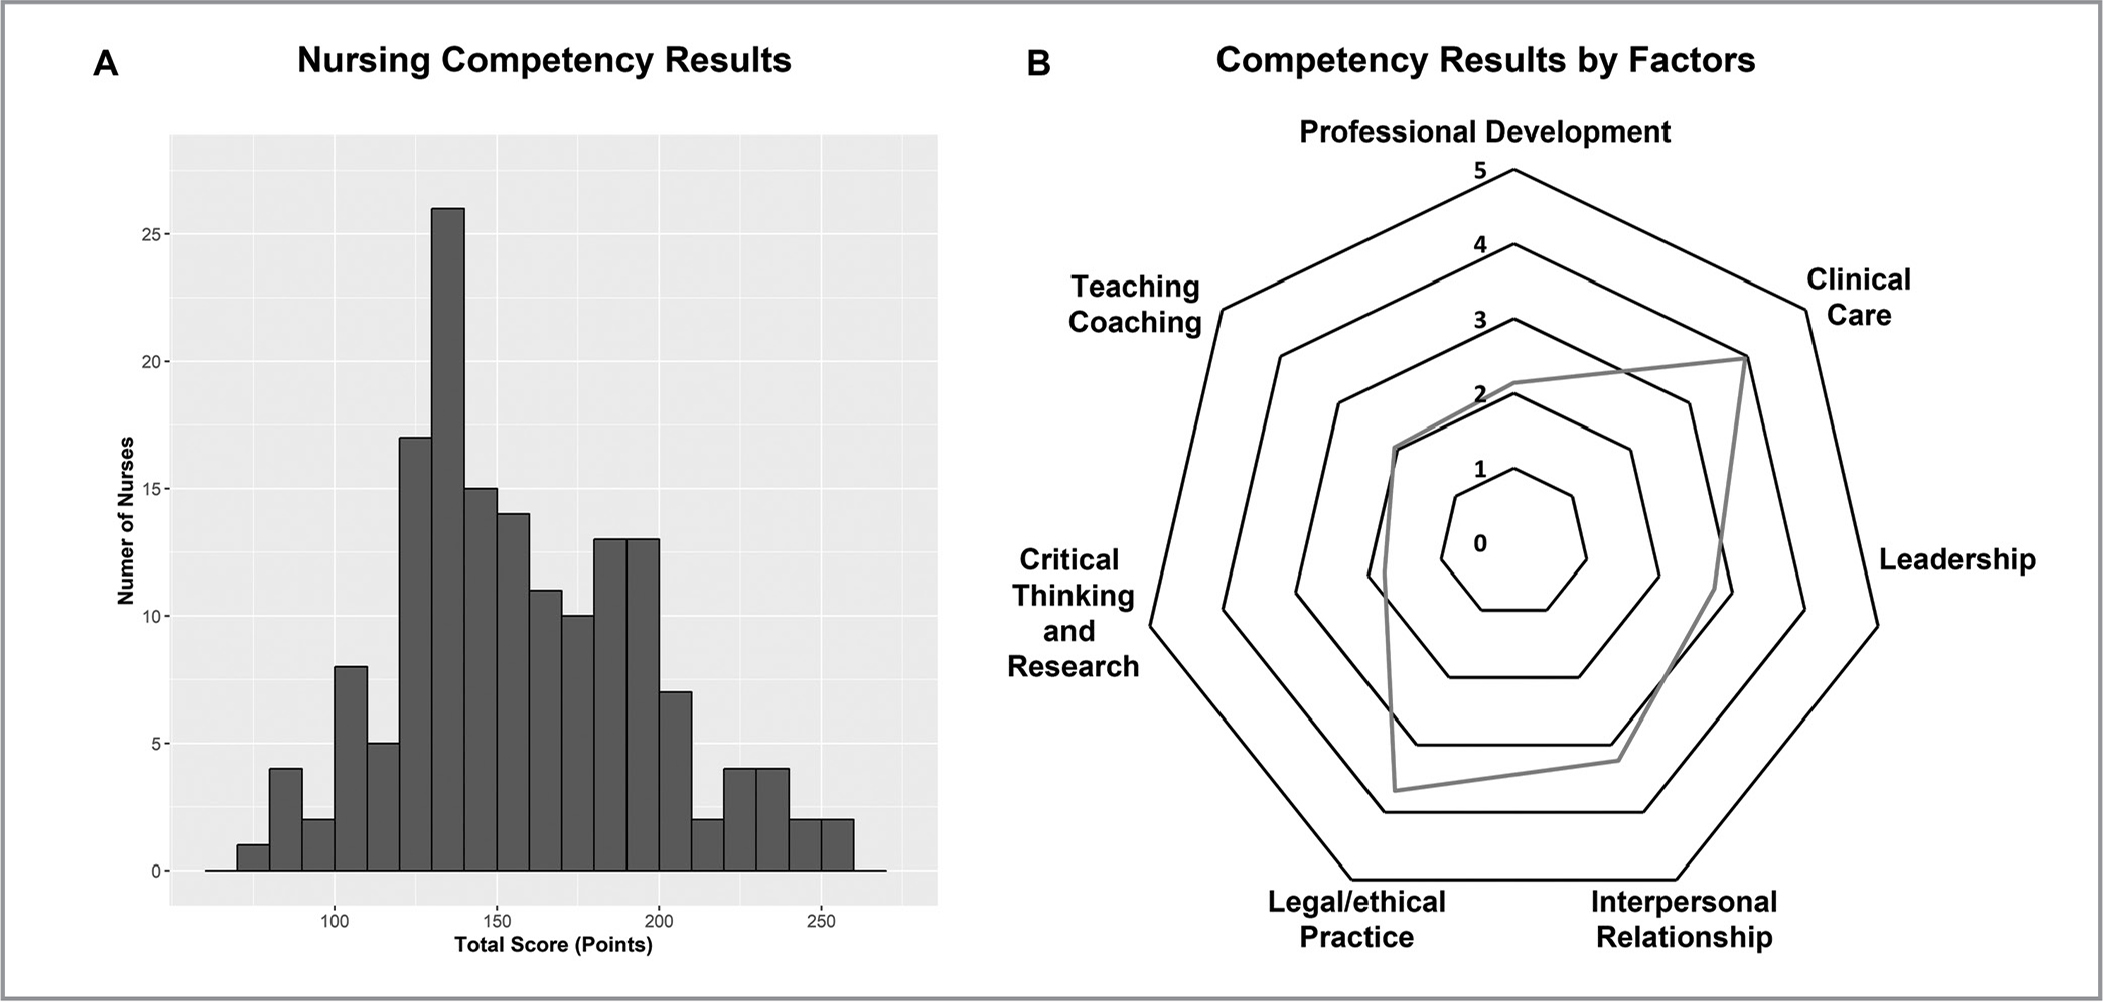 Summary of the nurse competence scaling results. (A) The bar plot showing the score distribution of participating nurses. (B) Radar plot illustrating the competence performance on seven different factors (maximum score = 5).